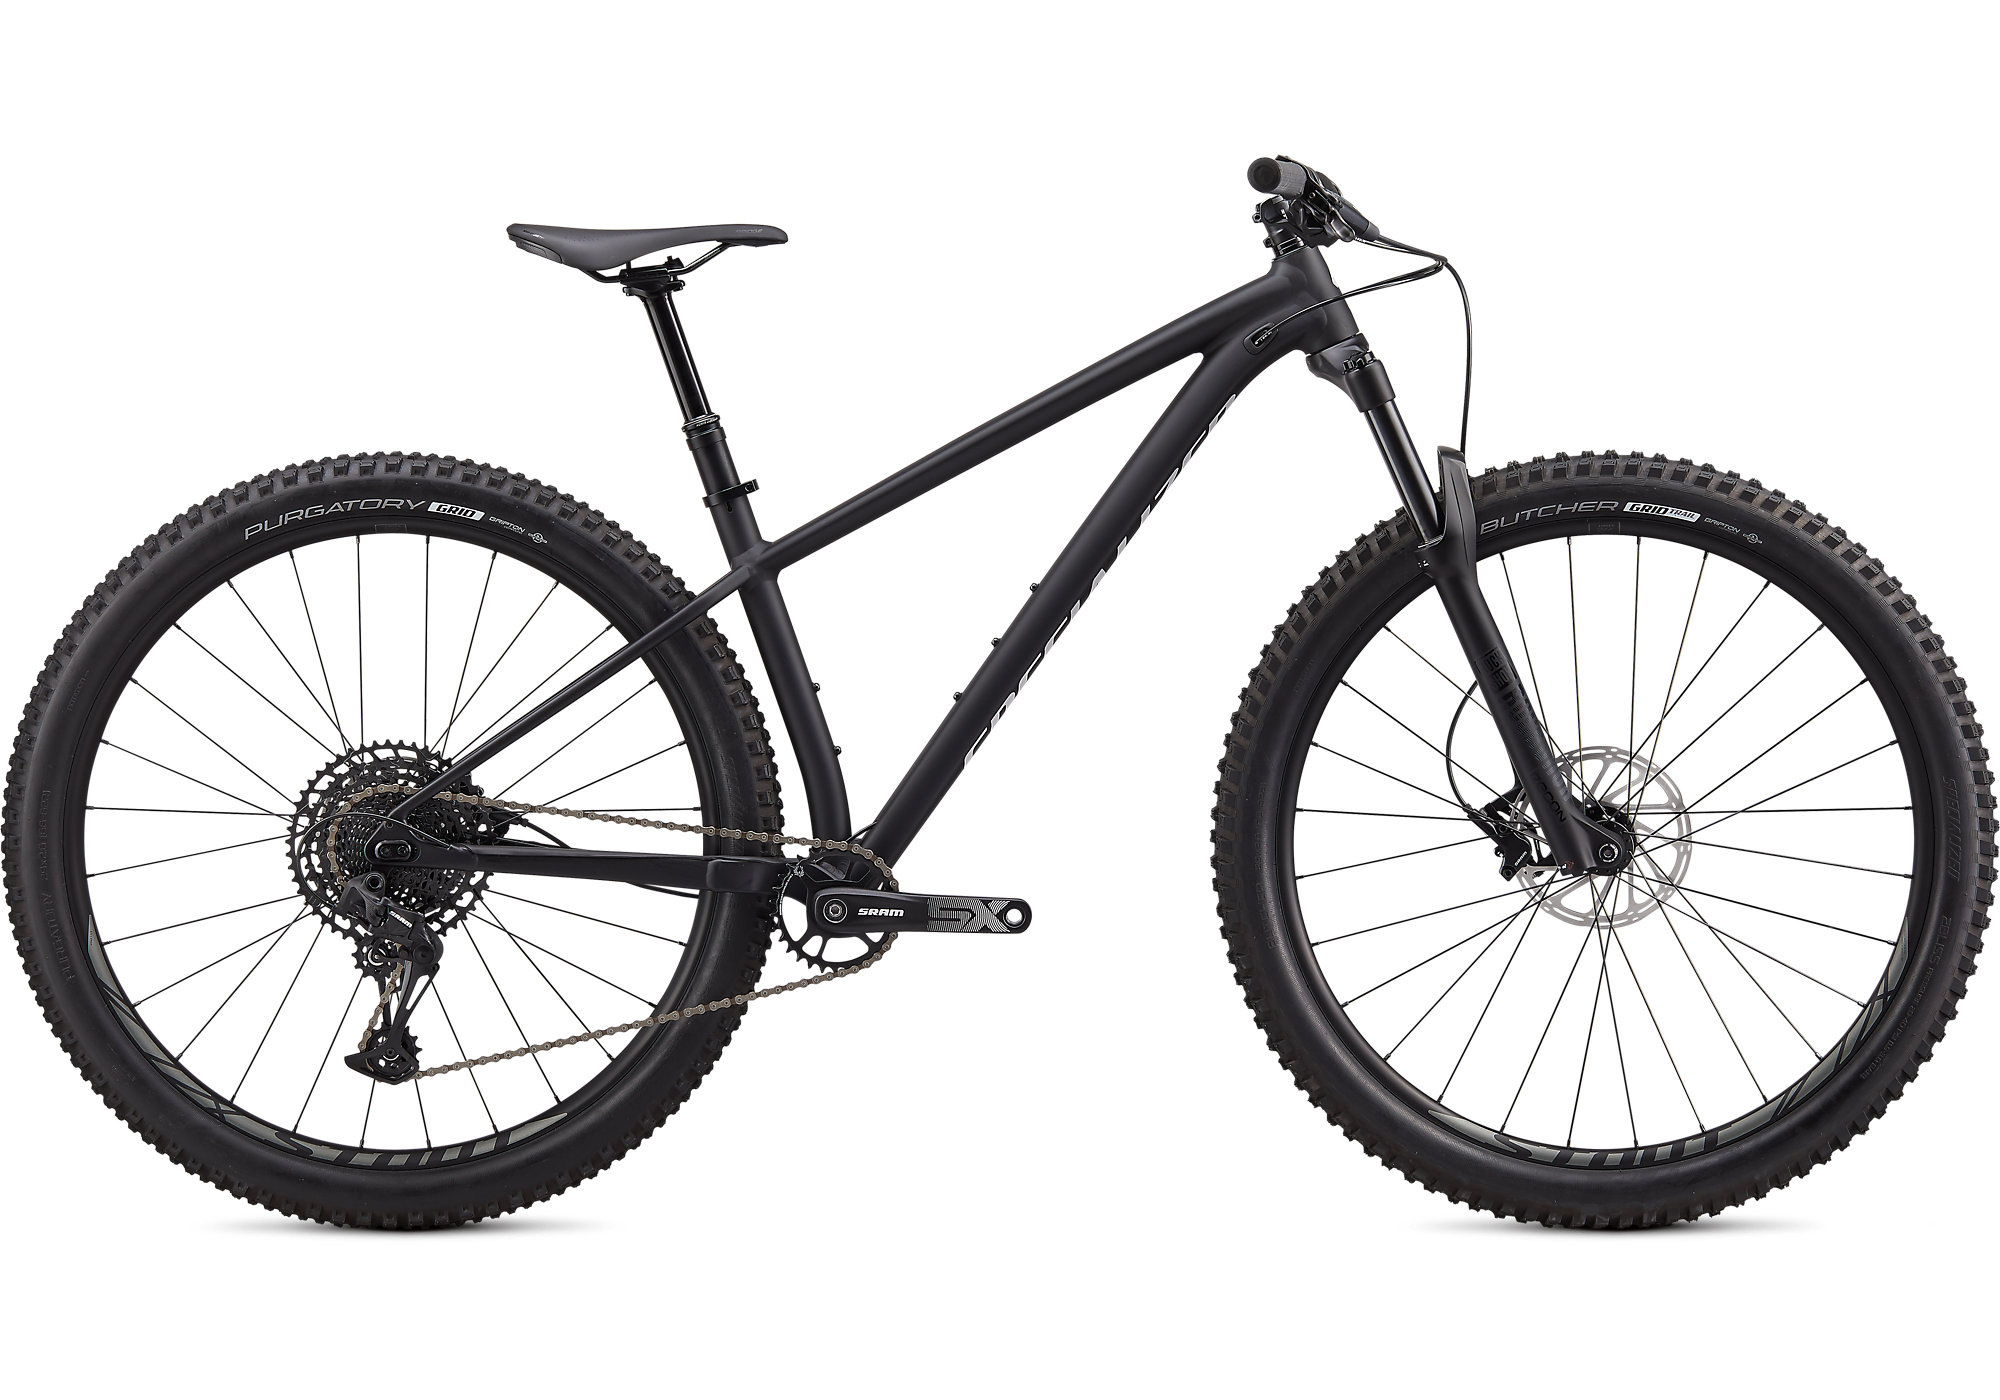 Specialized Fuse Comp 29 Mountain Bike In Black 1 299 00